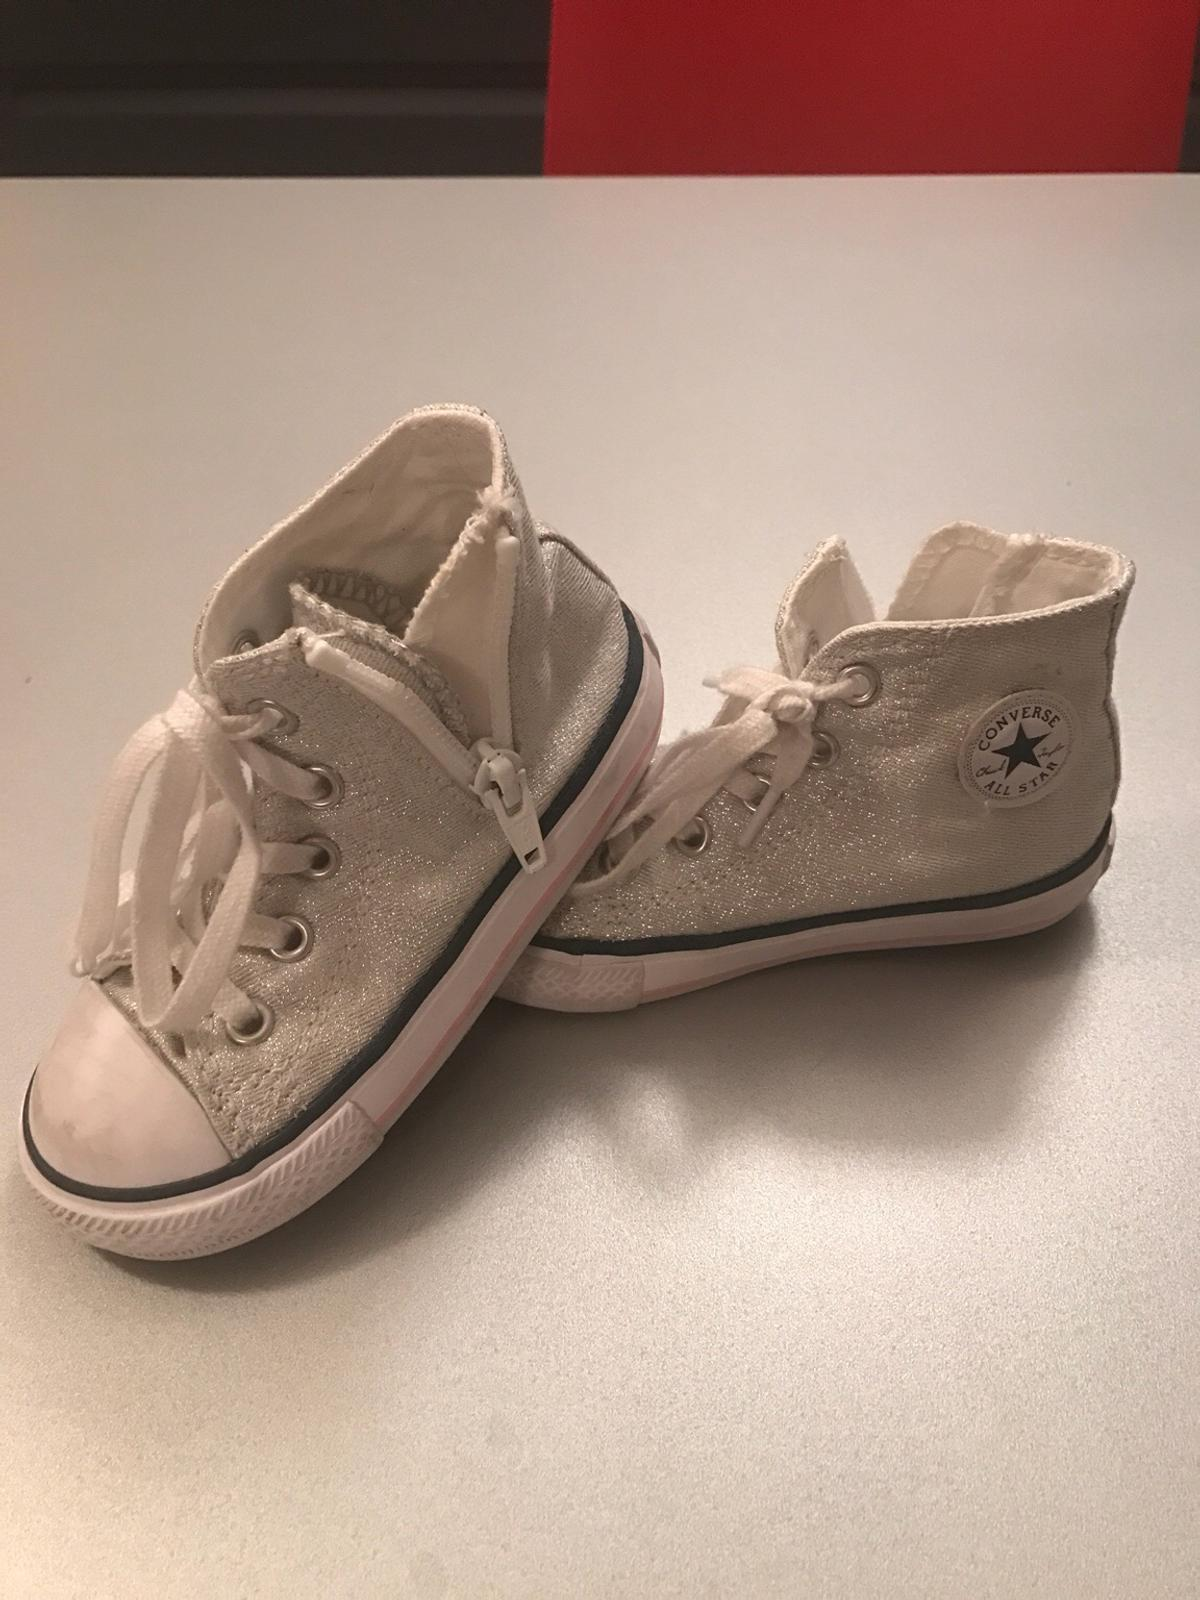 converse all star bimba 23